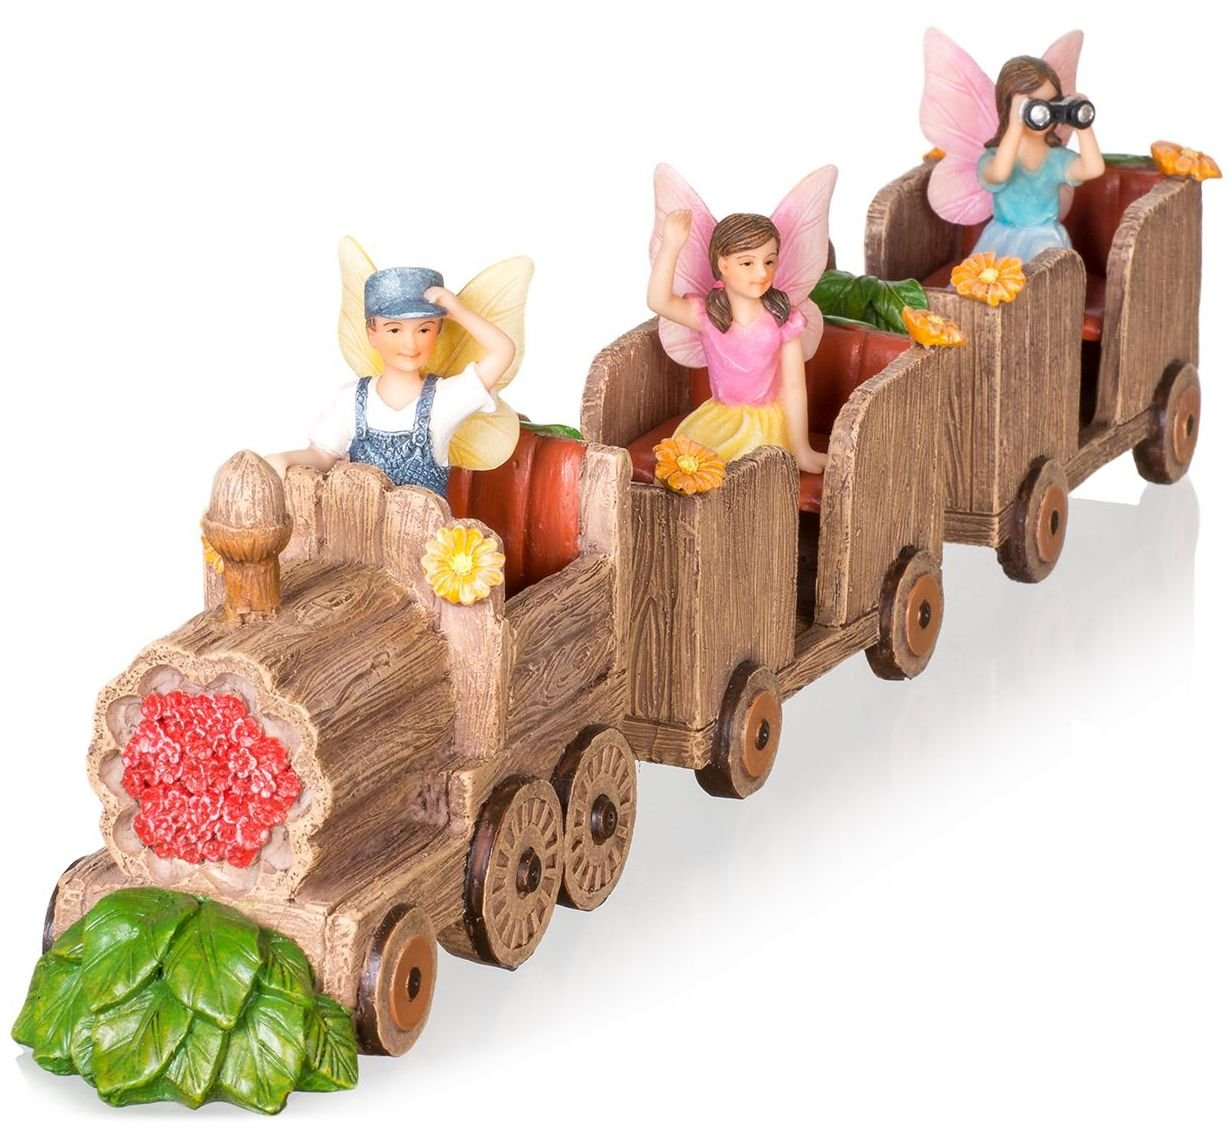 Joykick Fairy Garden Train Kit - Miniature Hand Painted Figurine Statues with Accessories - Set of 6pcs for Your House or Lawn Decor